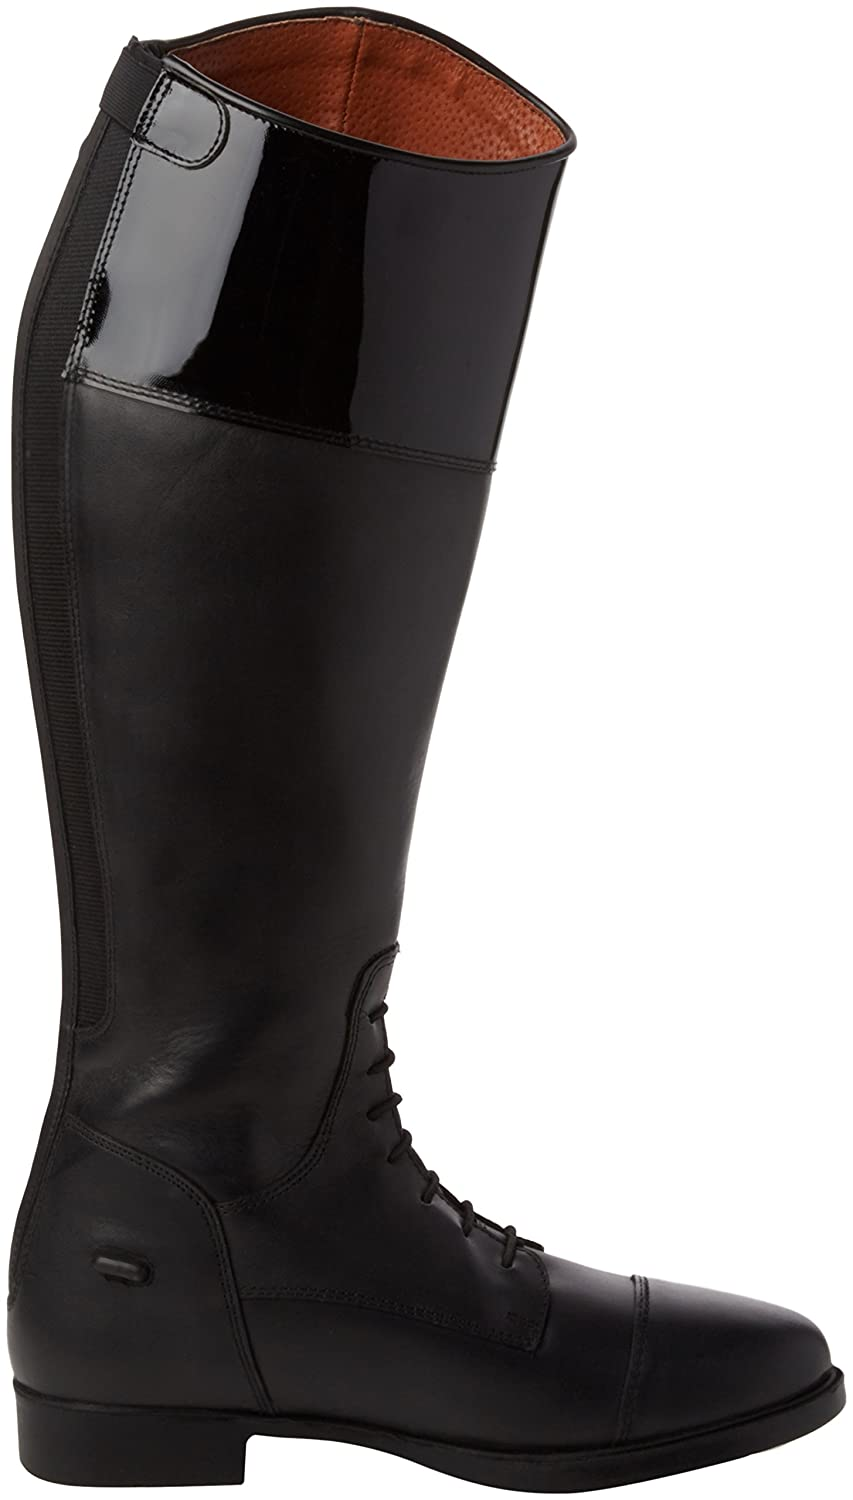 Sports & Outdoors Equestrian Toggi Womens Boots Boots